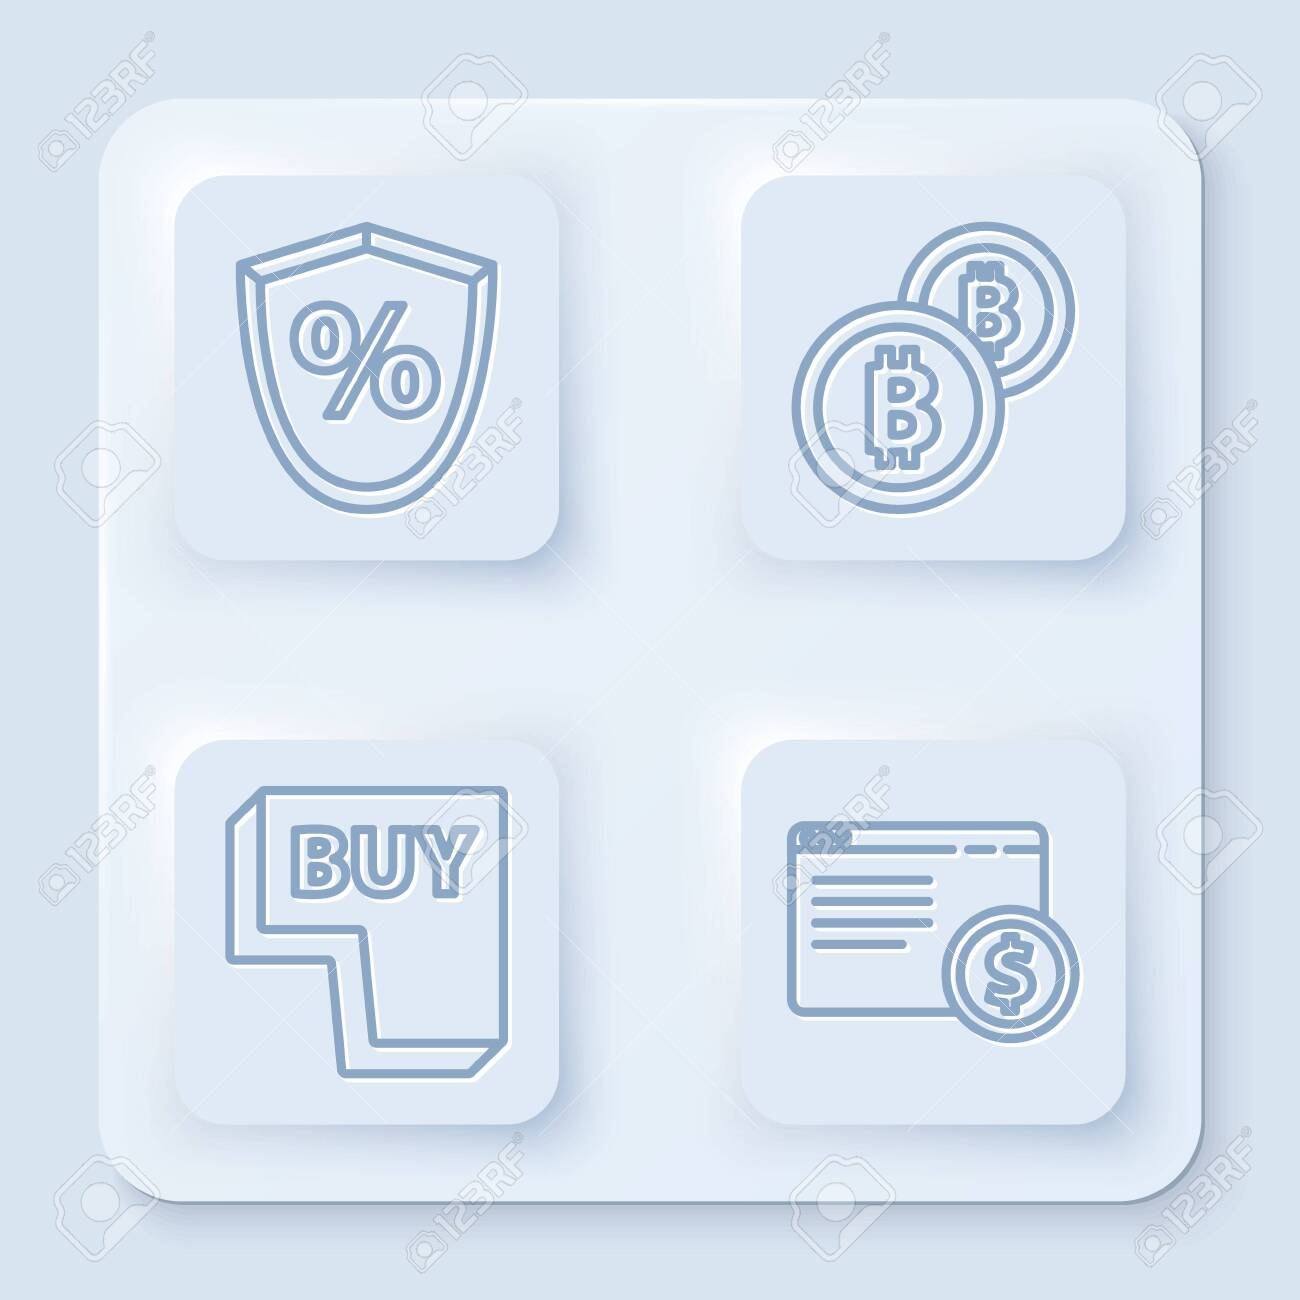 buy online with cryptocurrency